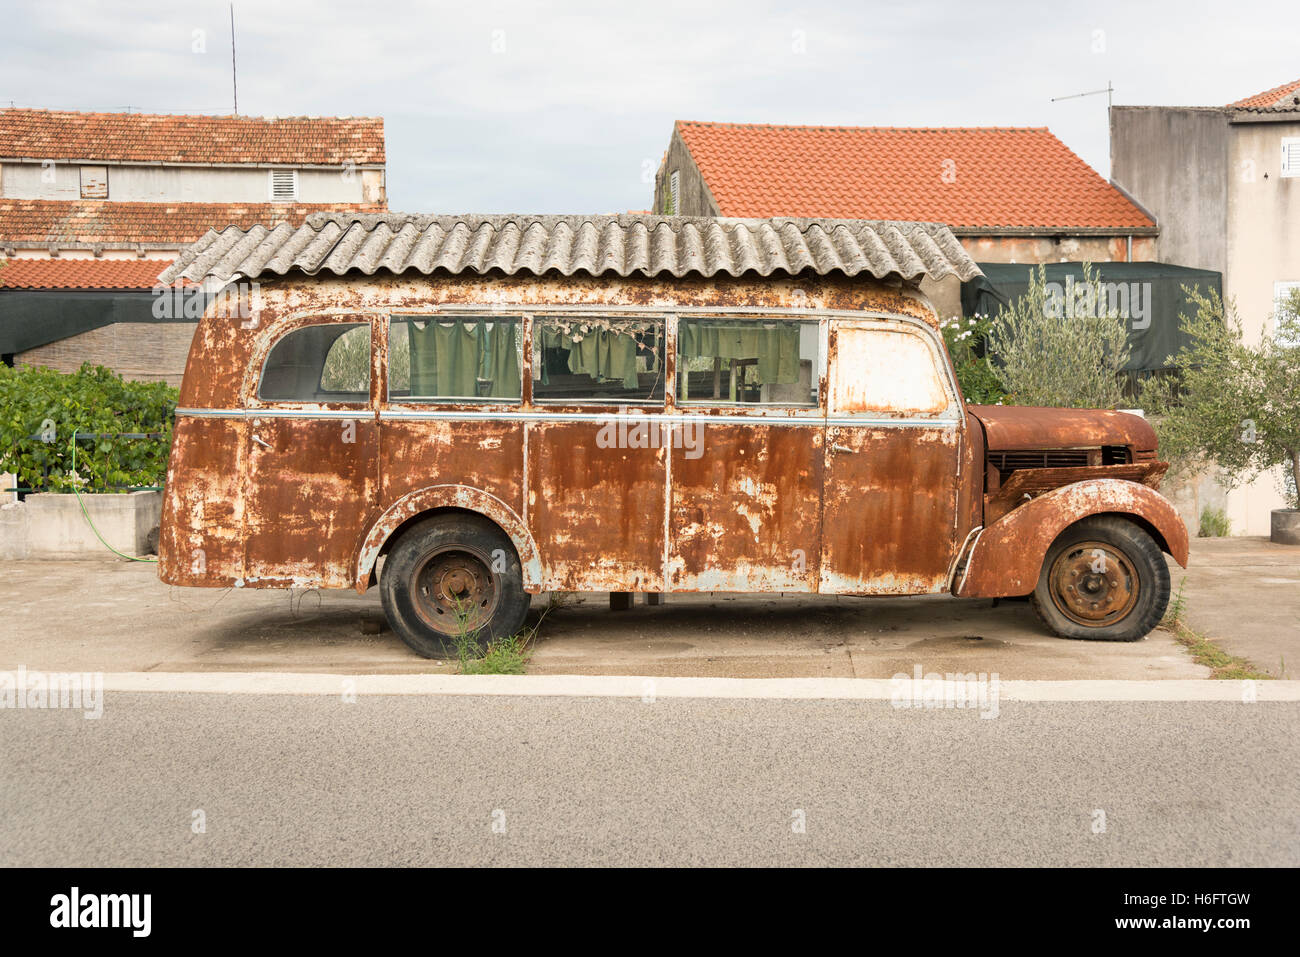 a-rusty-old-vintage-motorhome-with-an-as